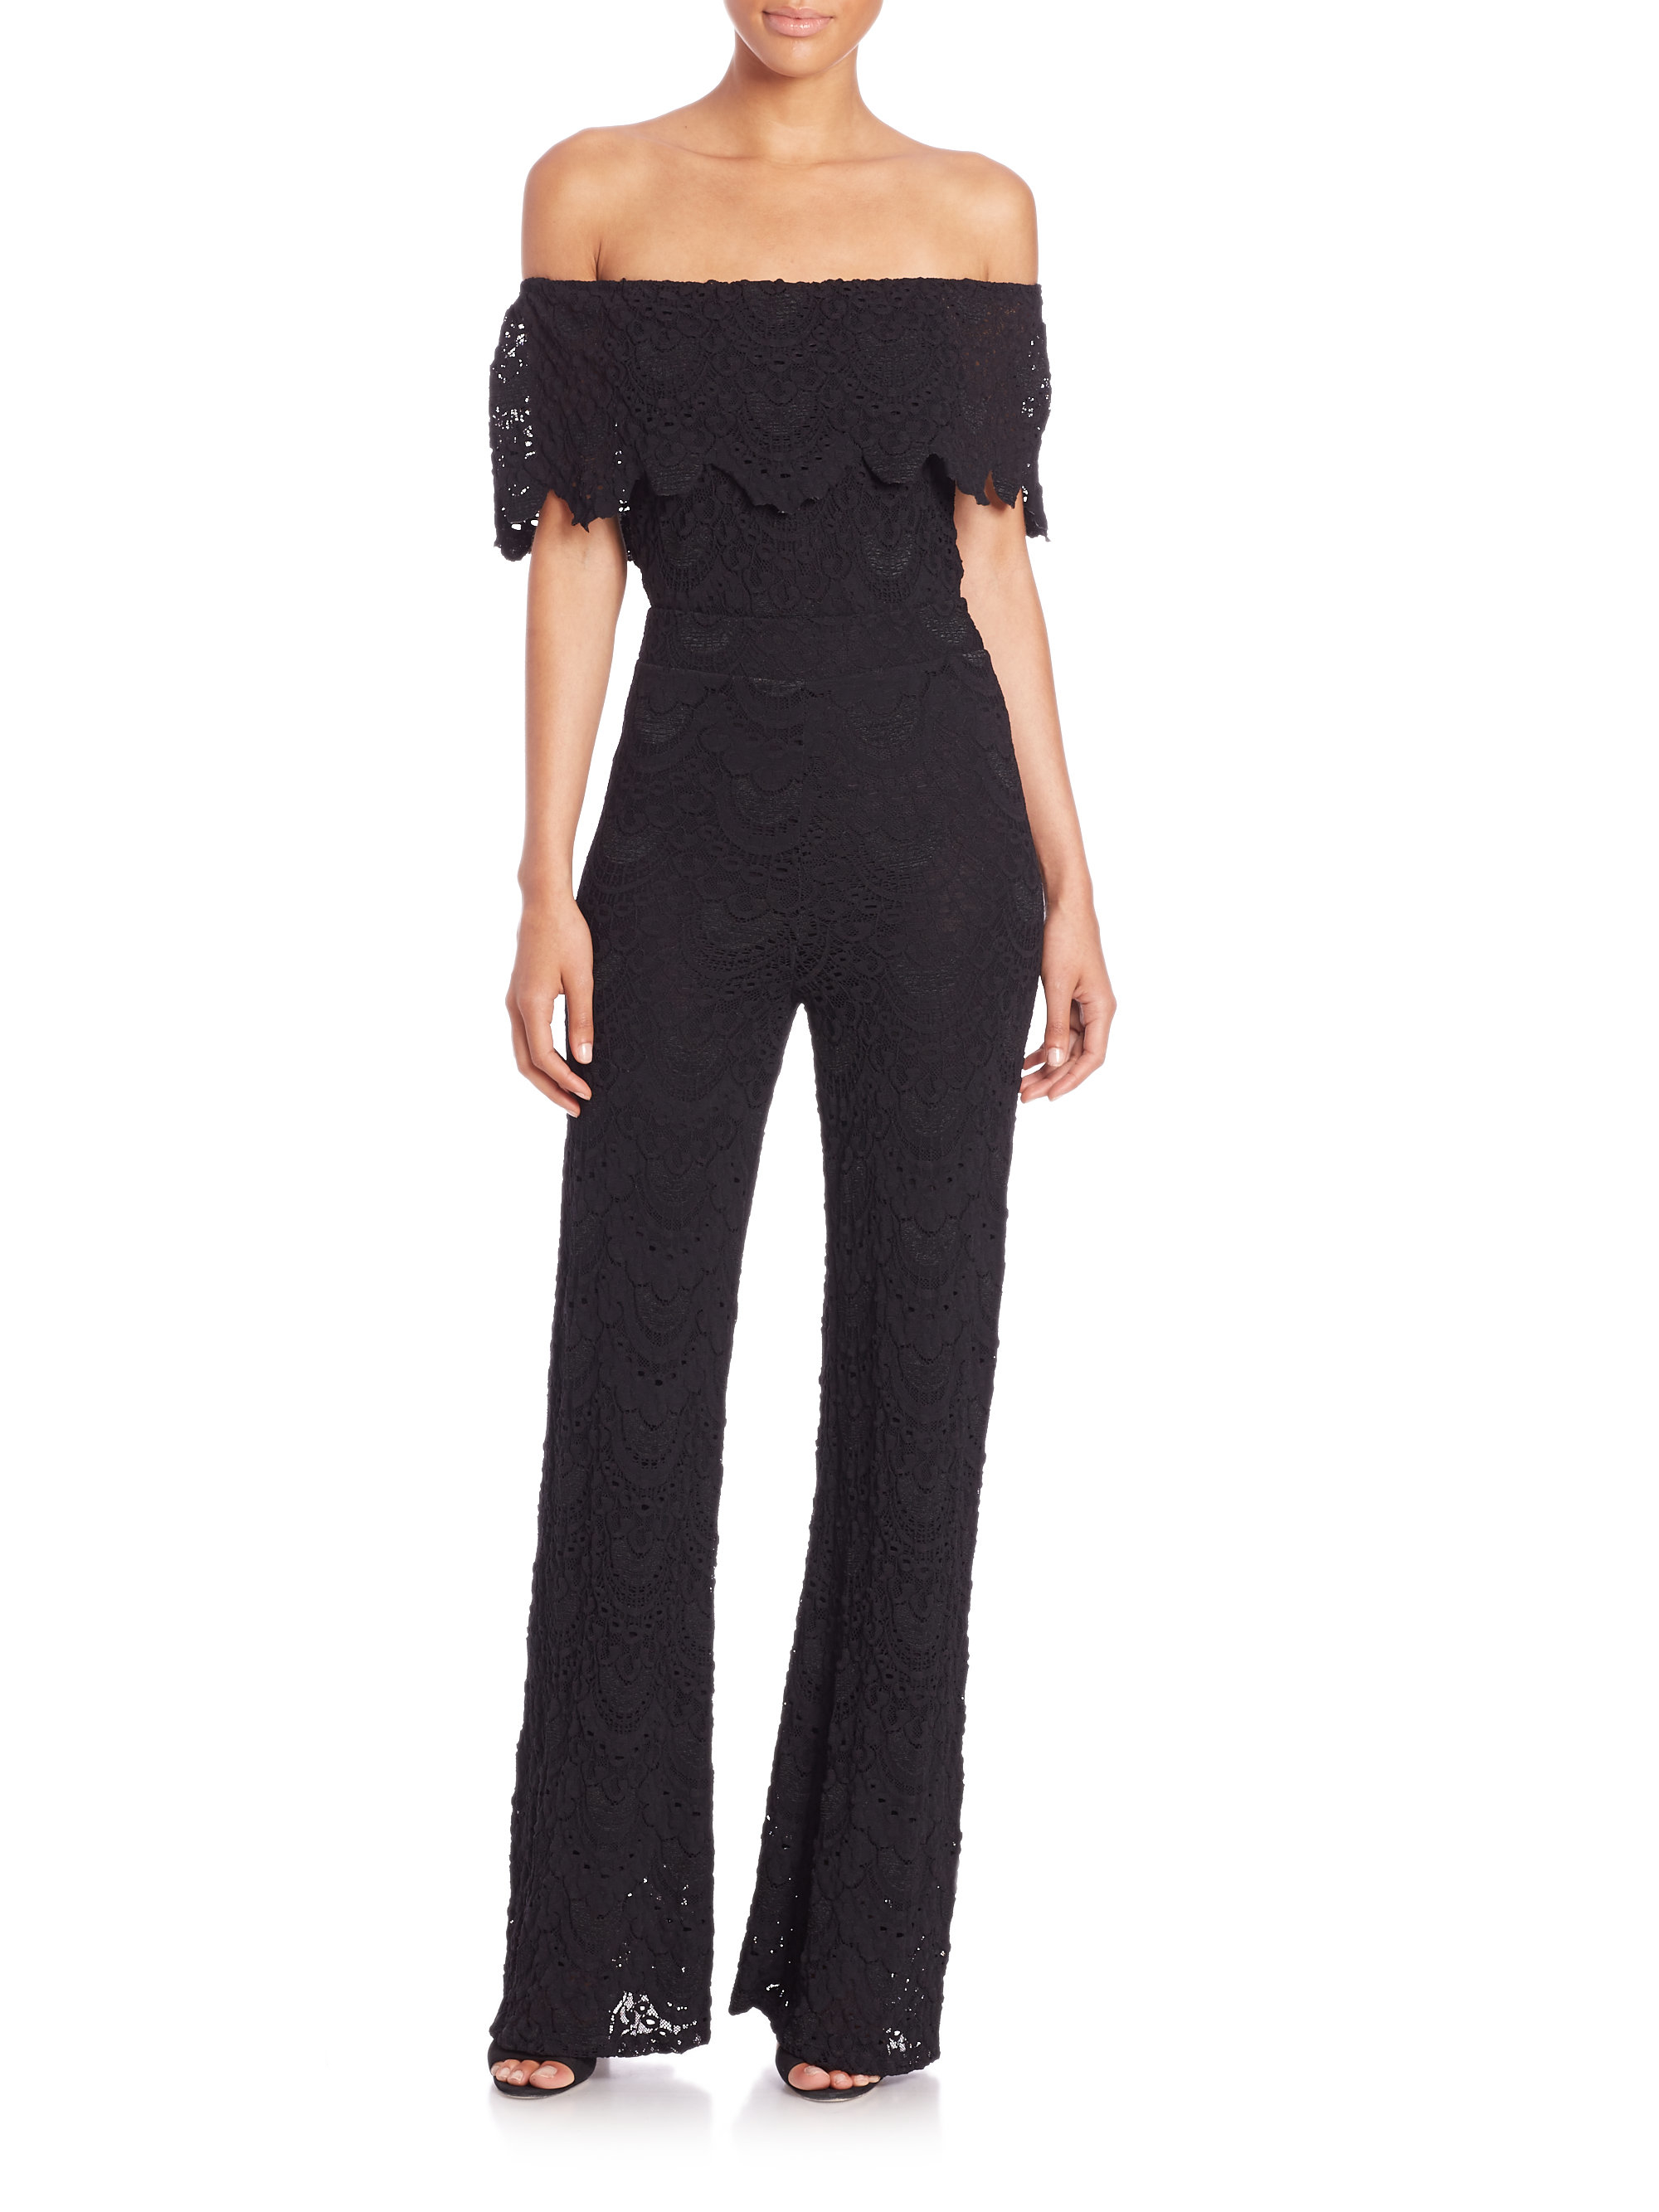 3a67a56a8447 Lyst - Nightcap Postiano Off-the-shoulder Lace Jumpsuit in Black